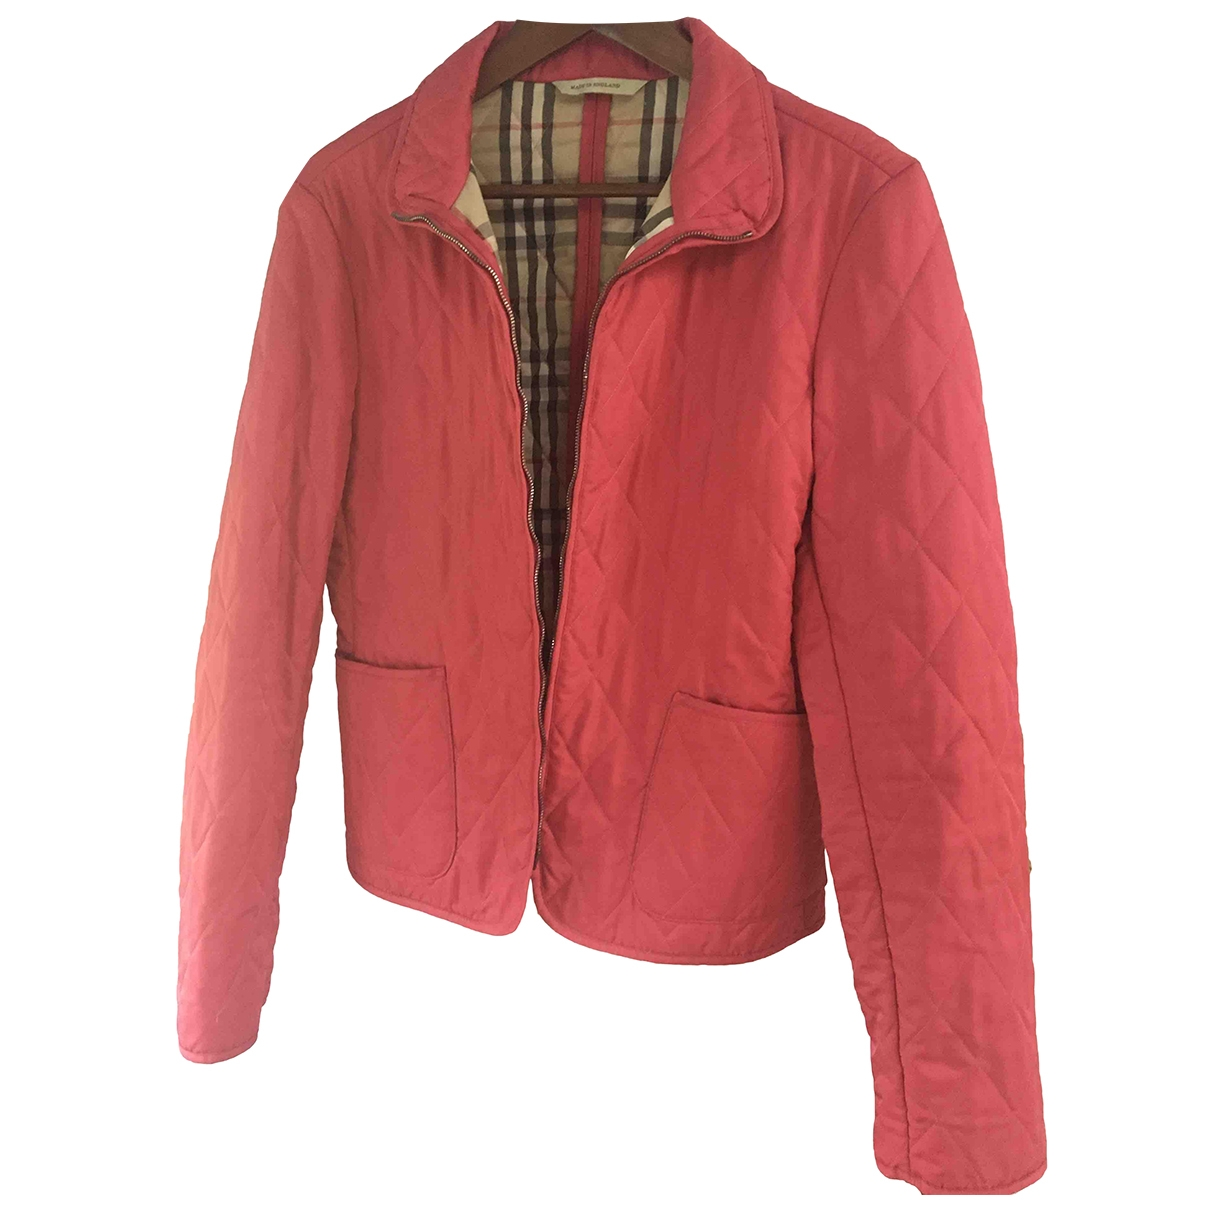 Burberry \N Pink jacket for Women M International